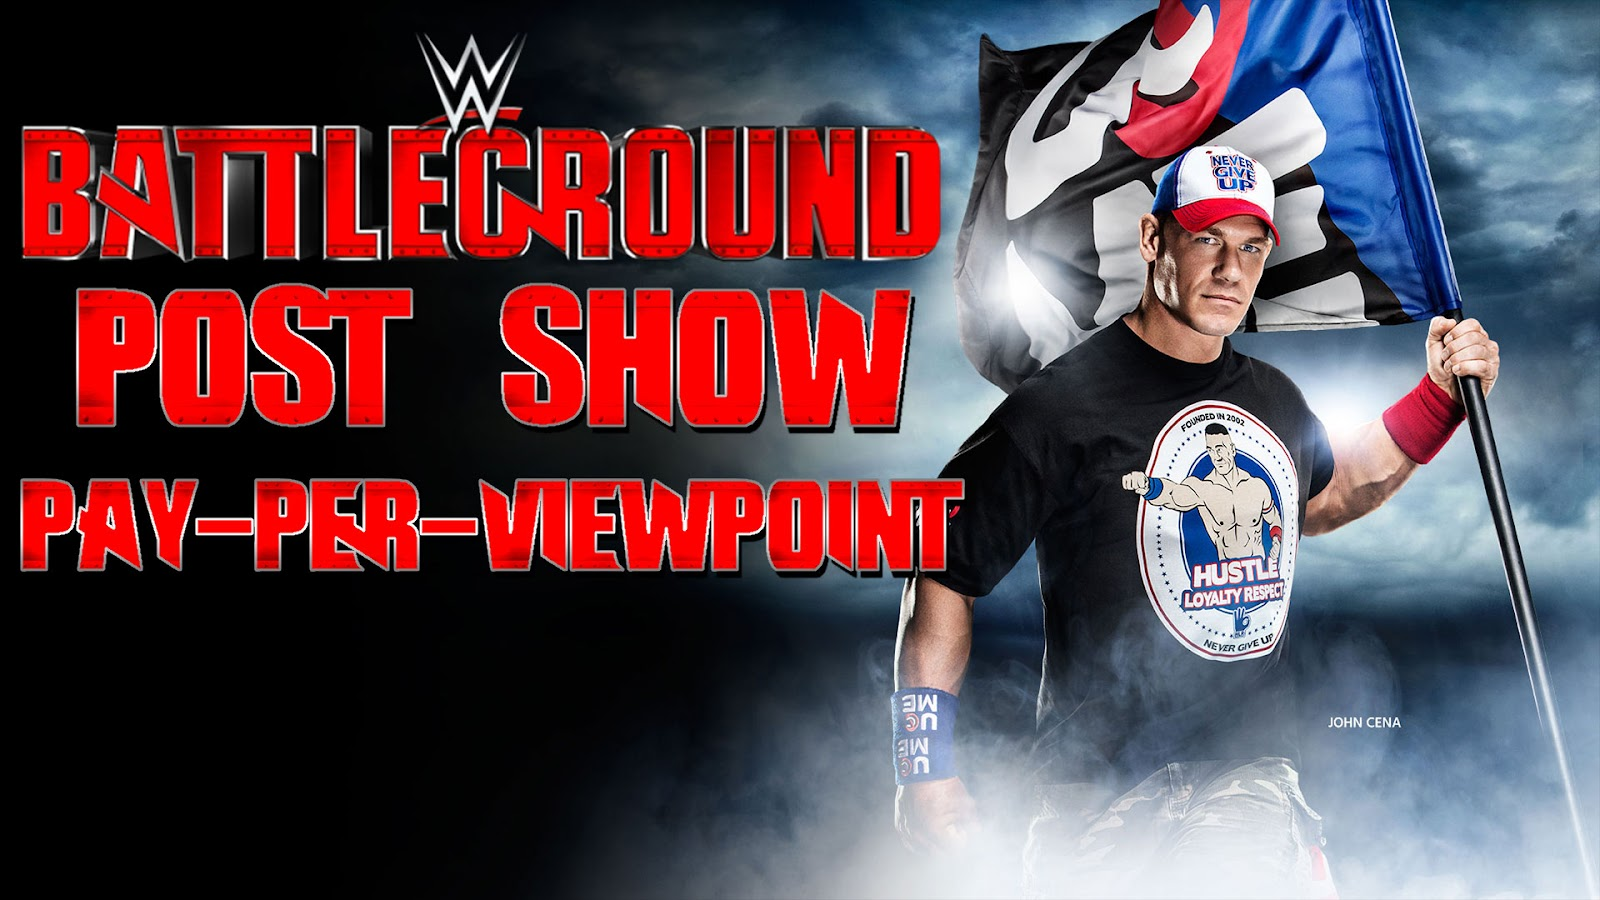 WWE Battleground 2016 Recap and Review Podcast